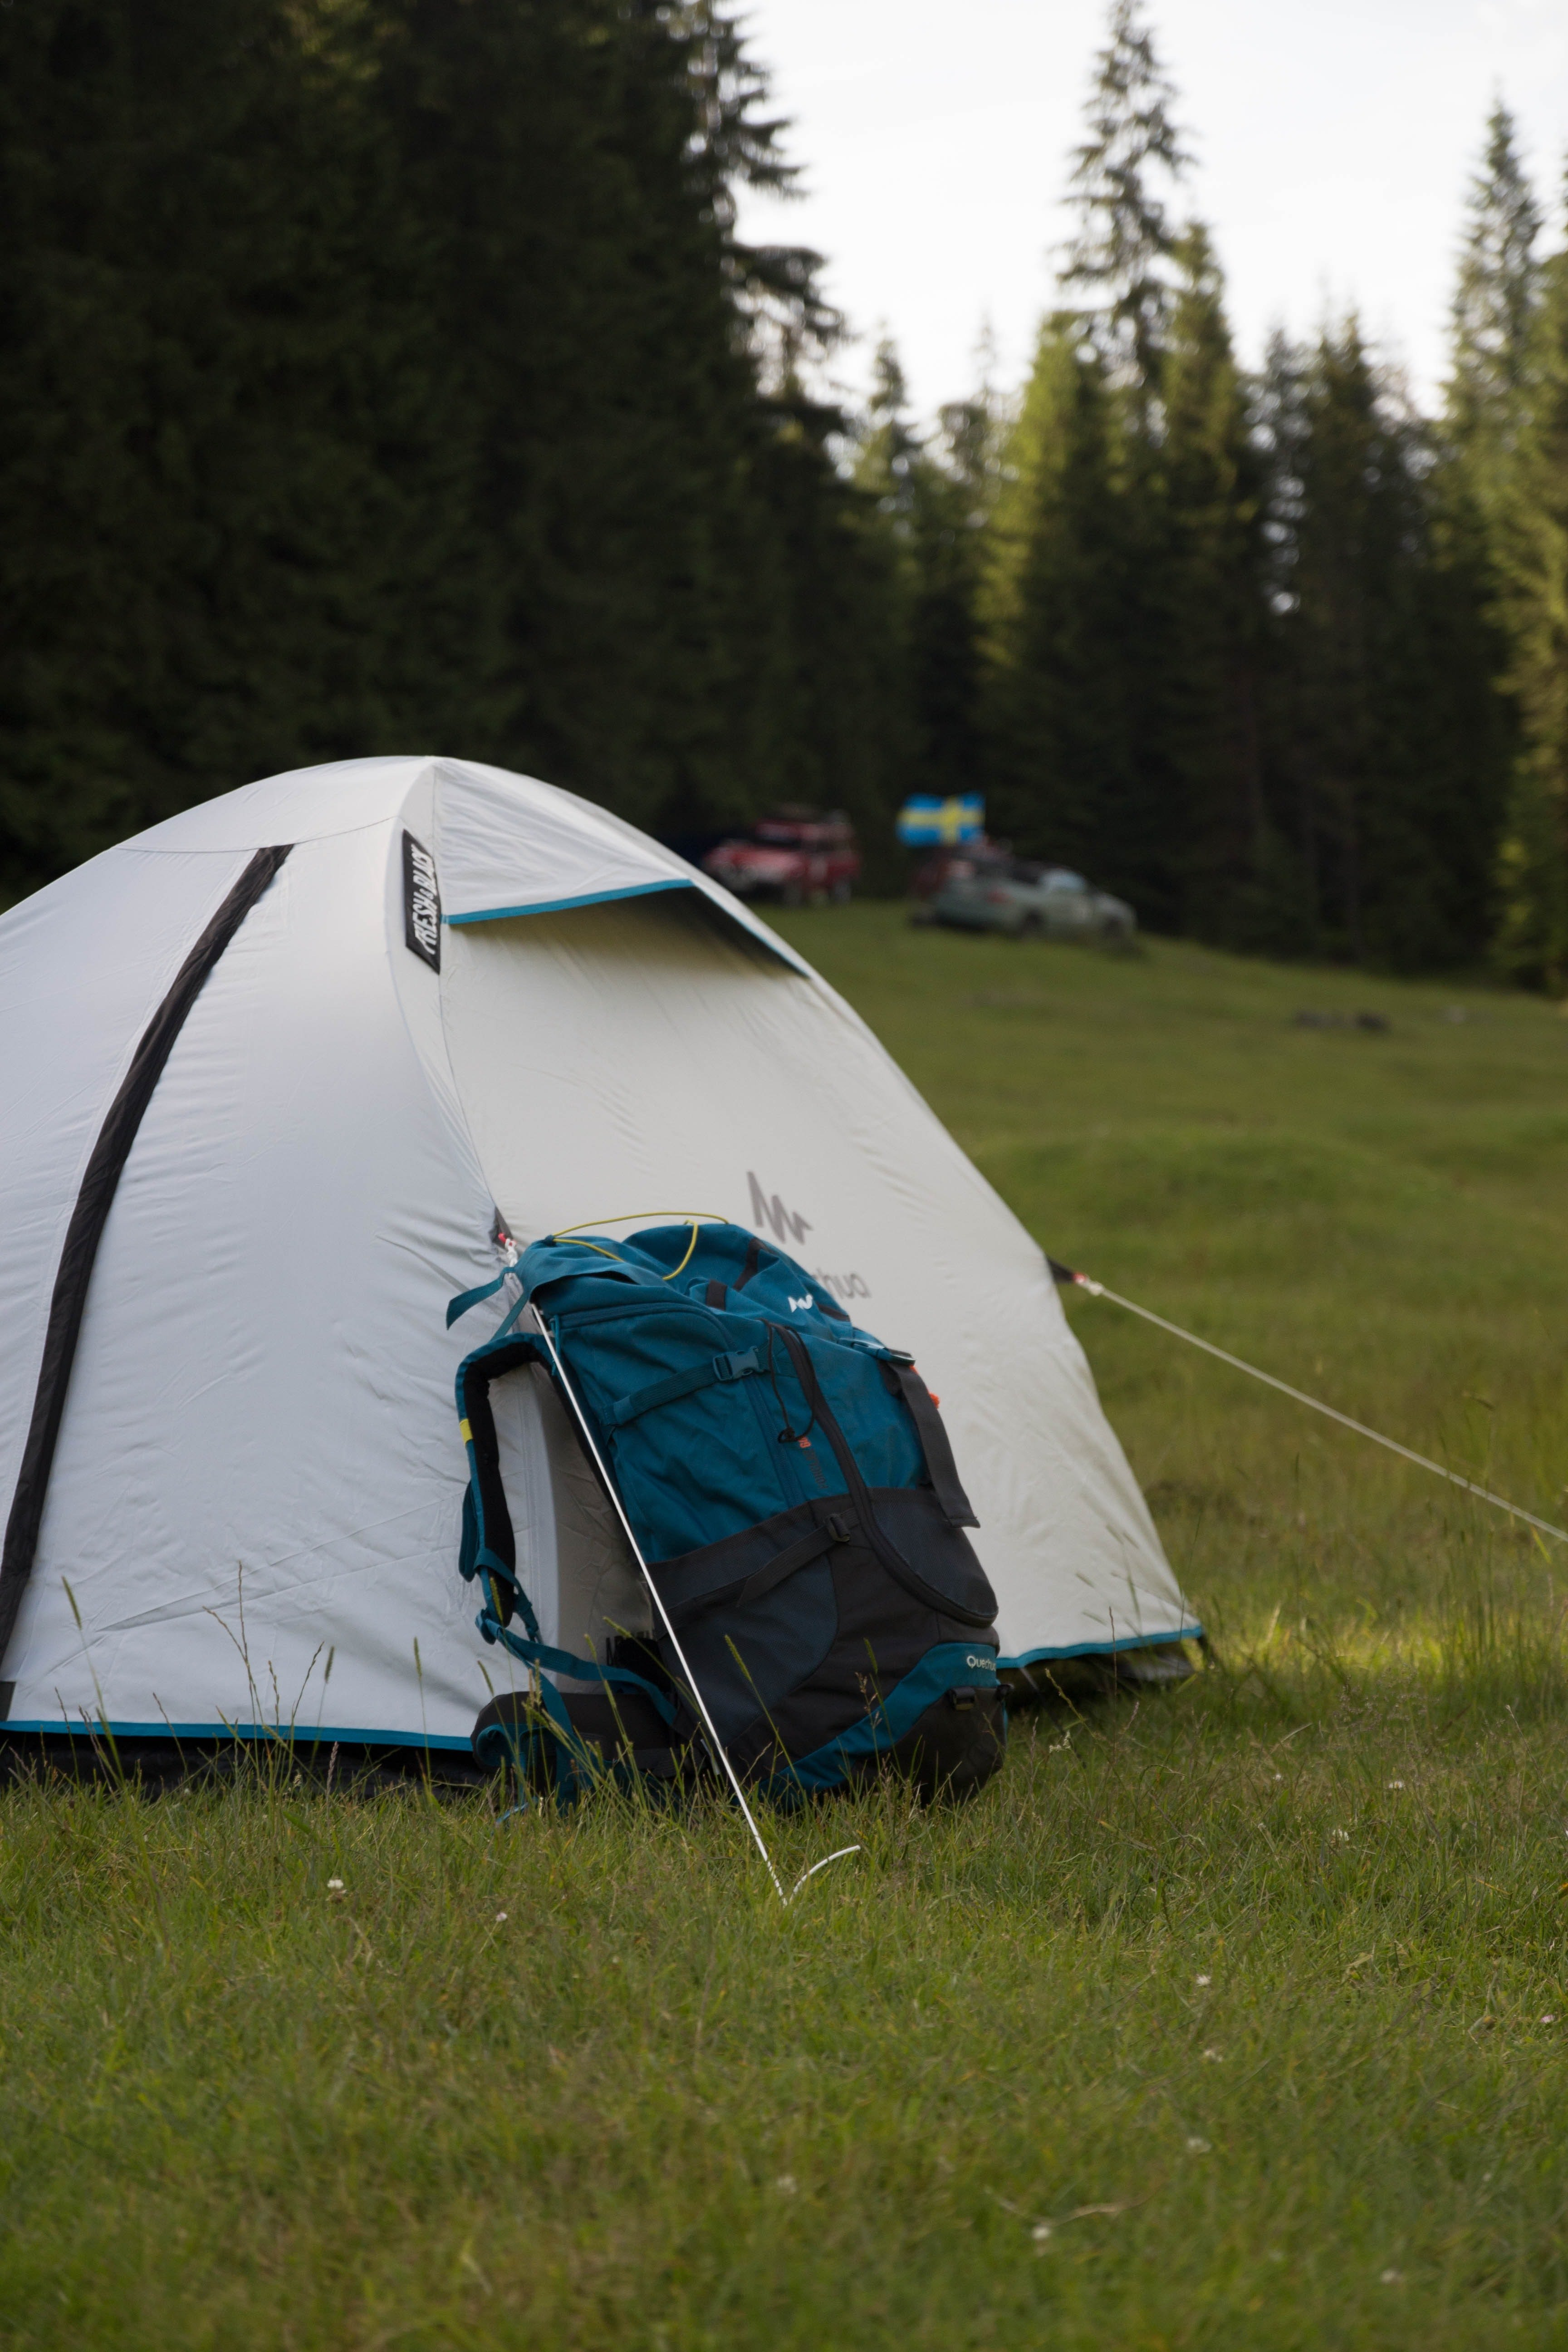 A picture of a campsite   Source: Pexels